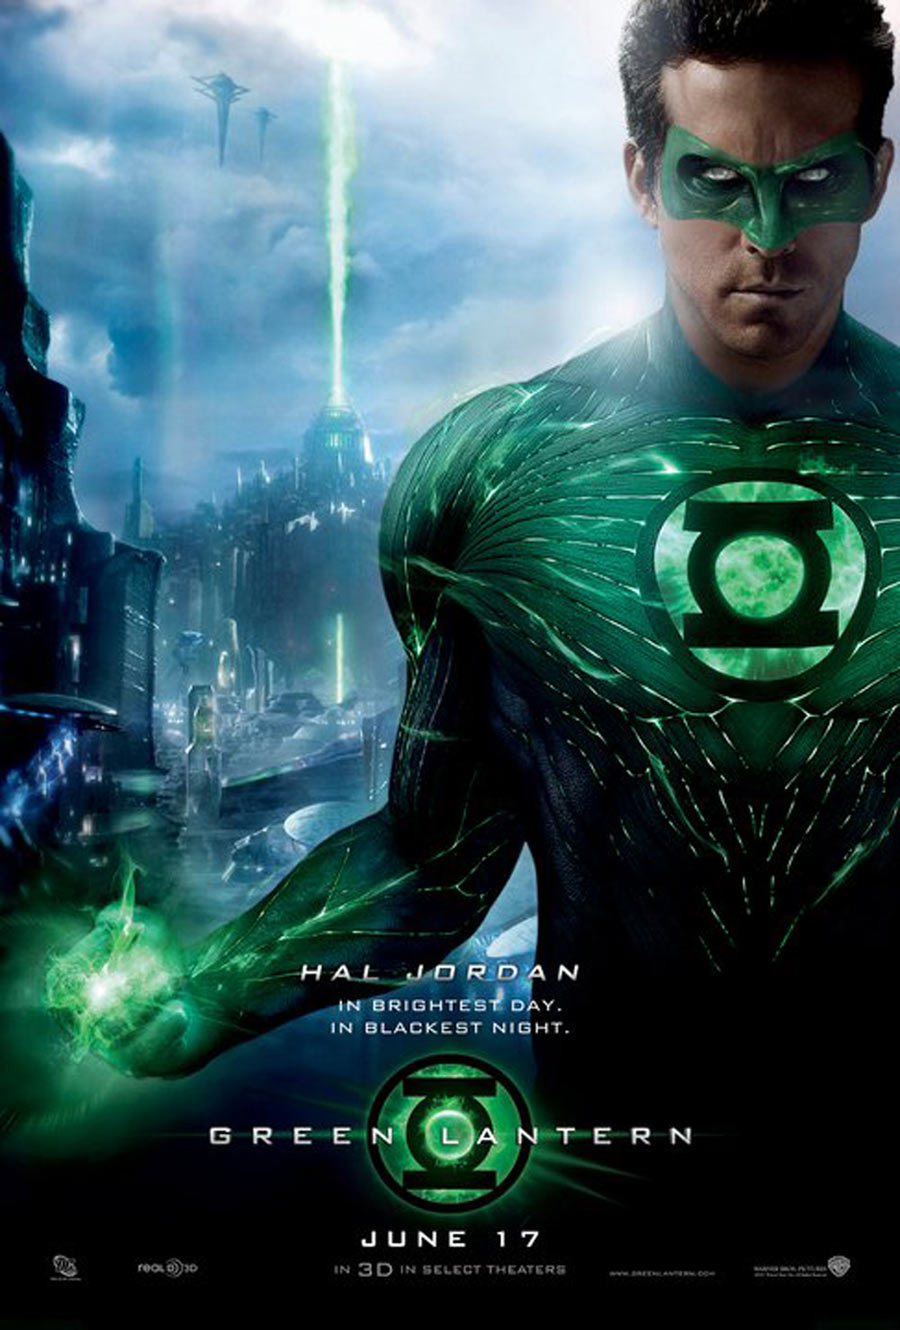 New-Green-Lantern-Movie-Poster-April-2011.jpg